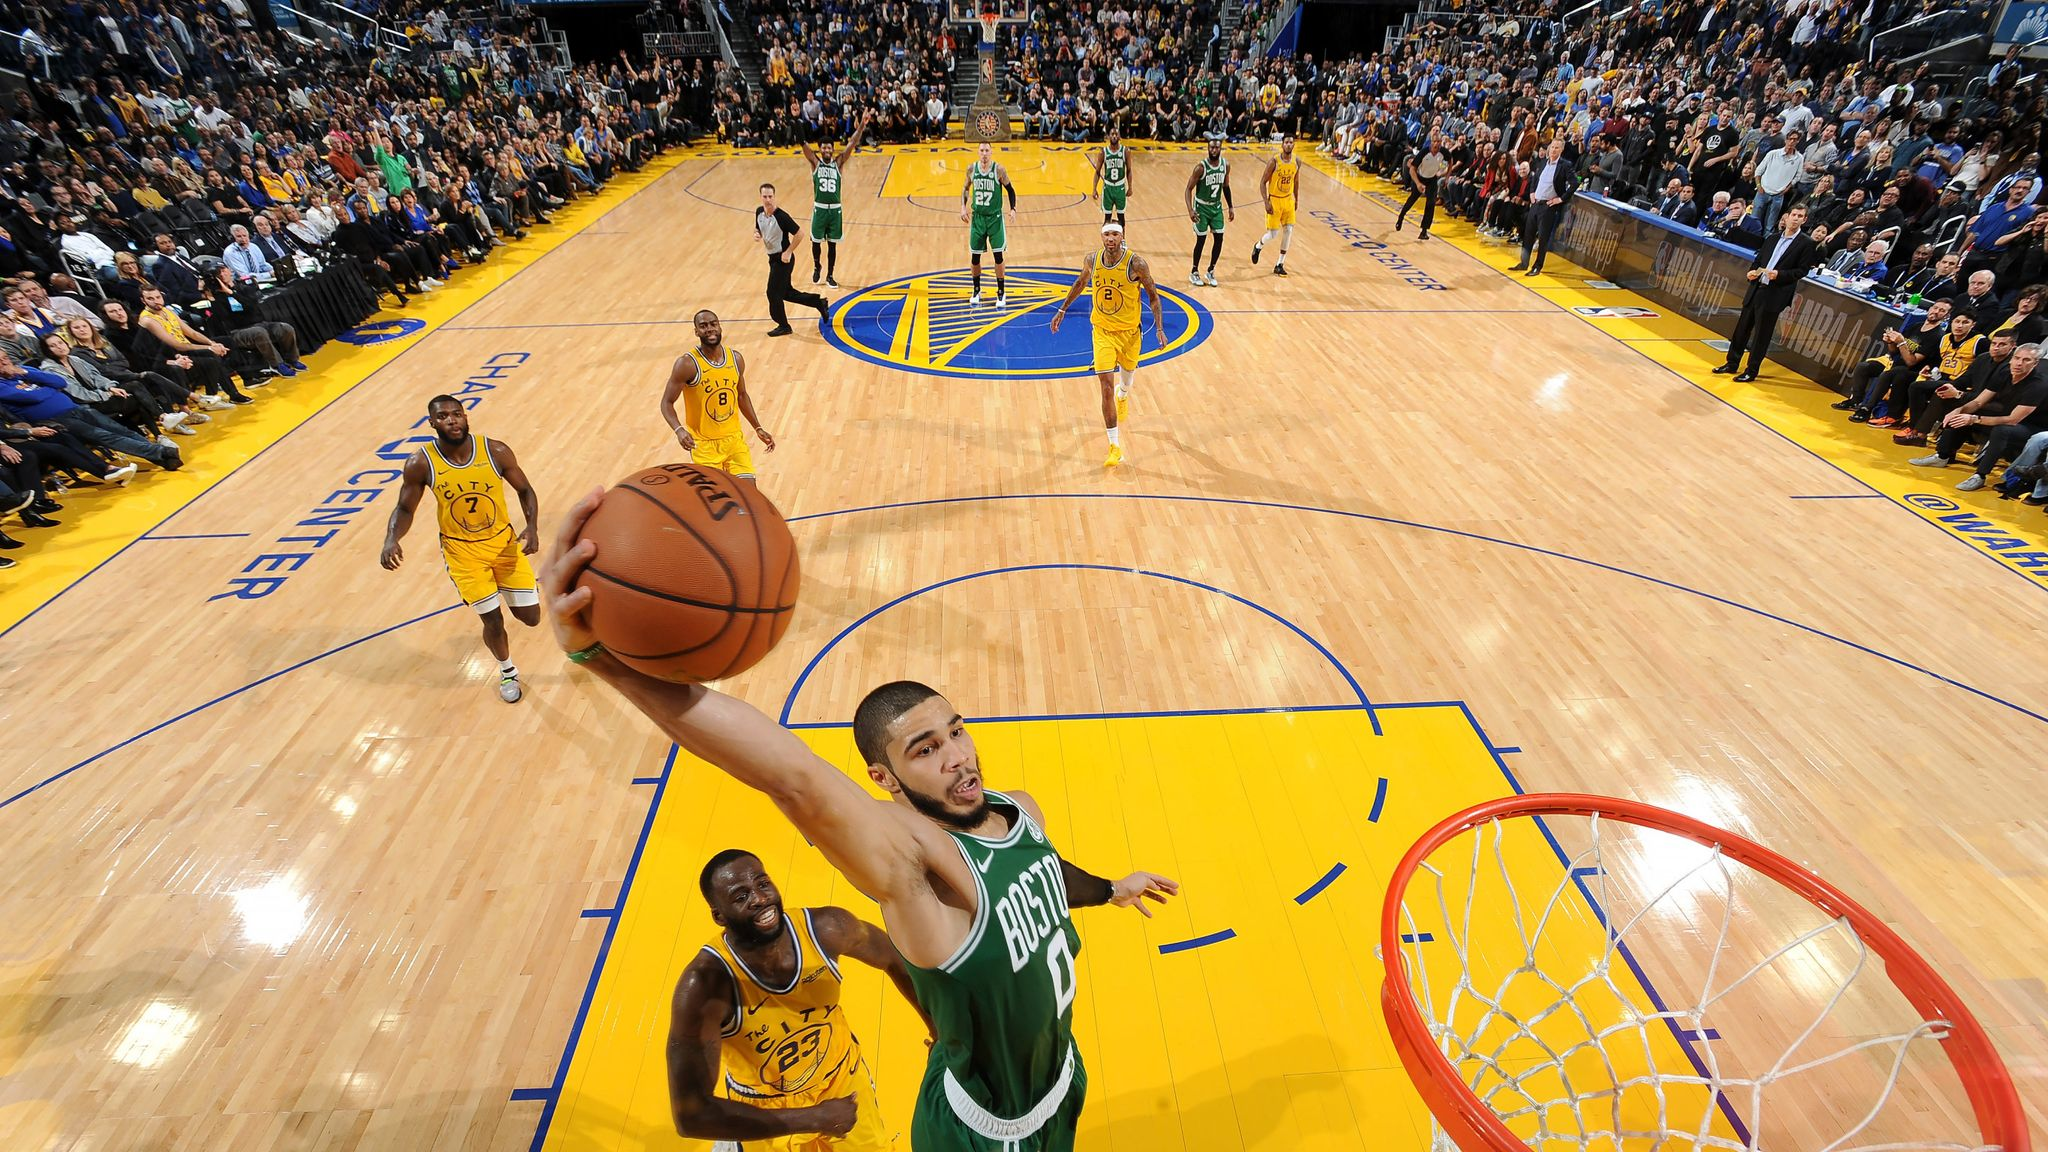 Boston Celtics rally past Golden State Warriors for 10th straight win